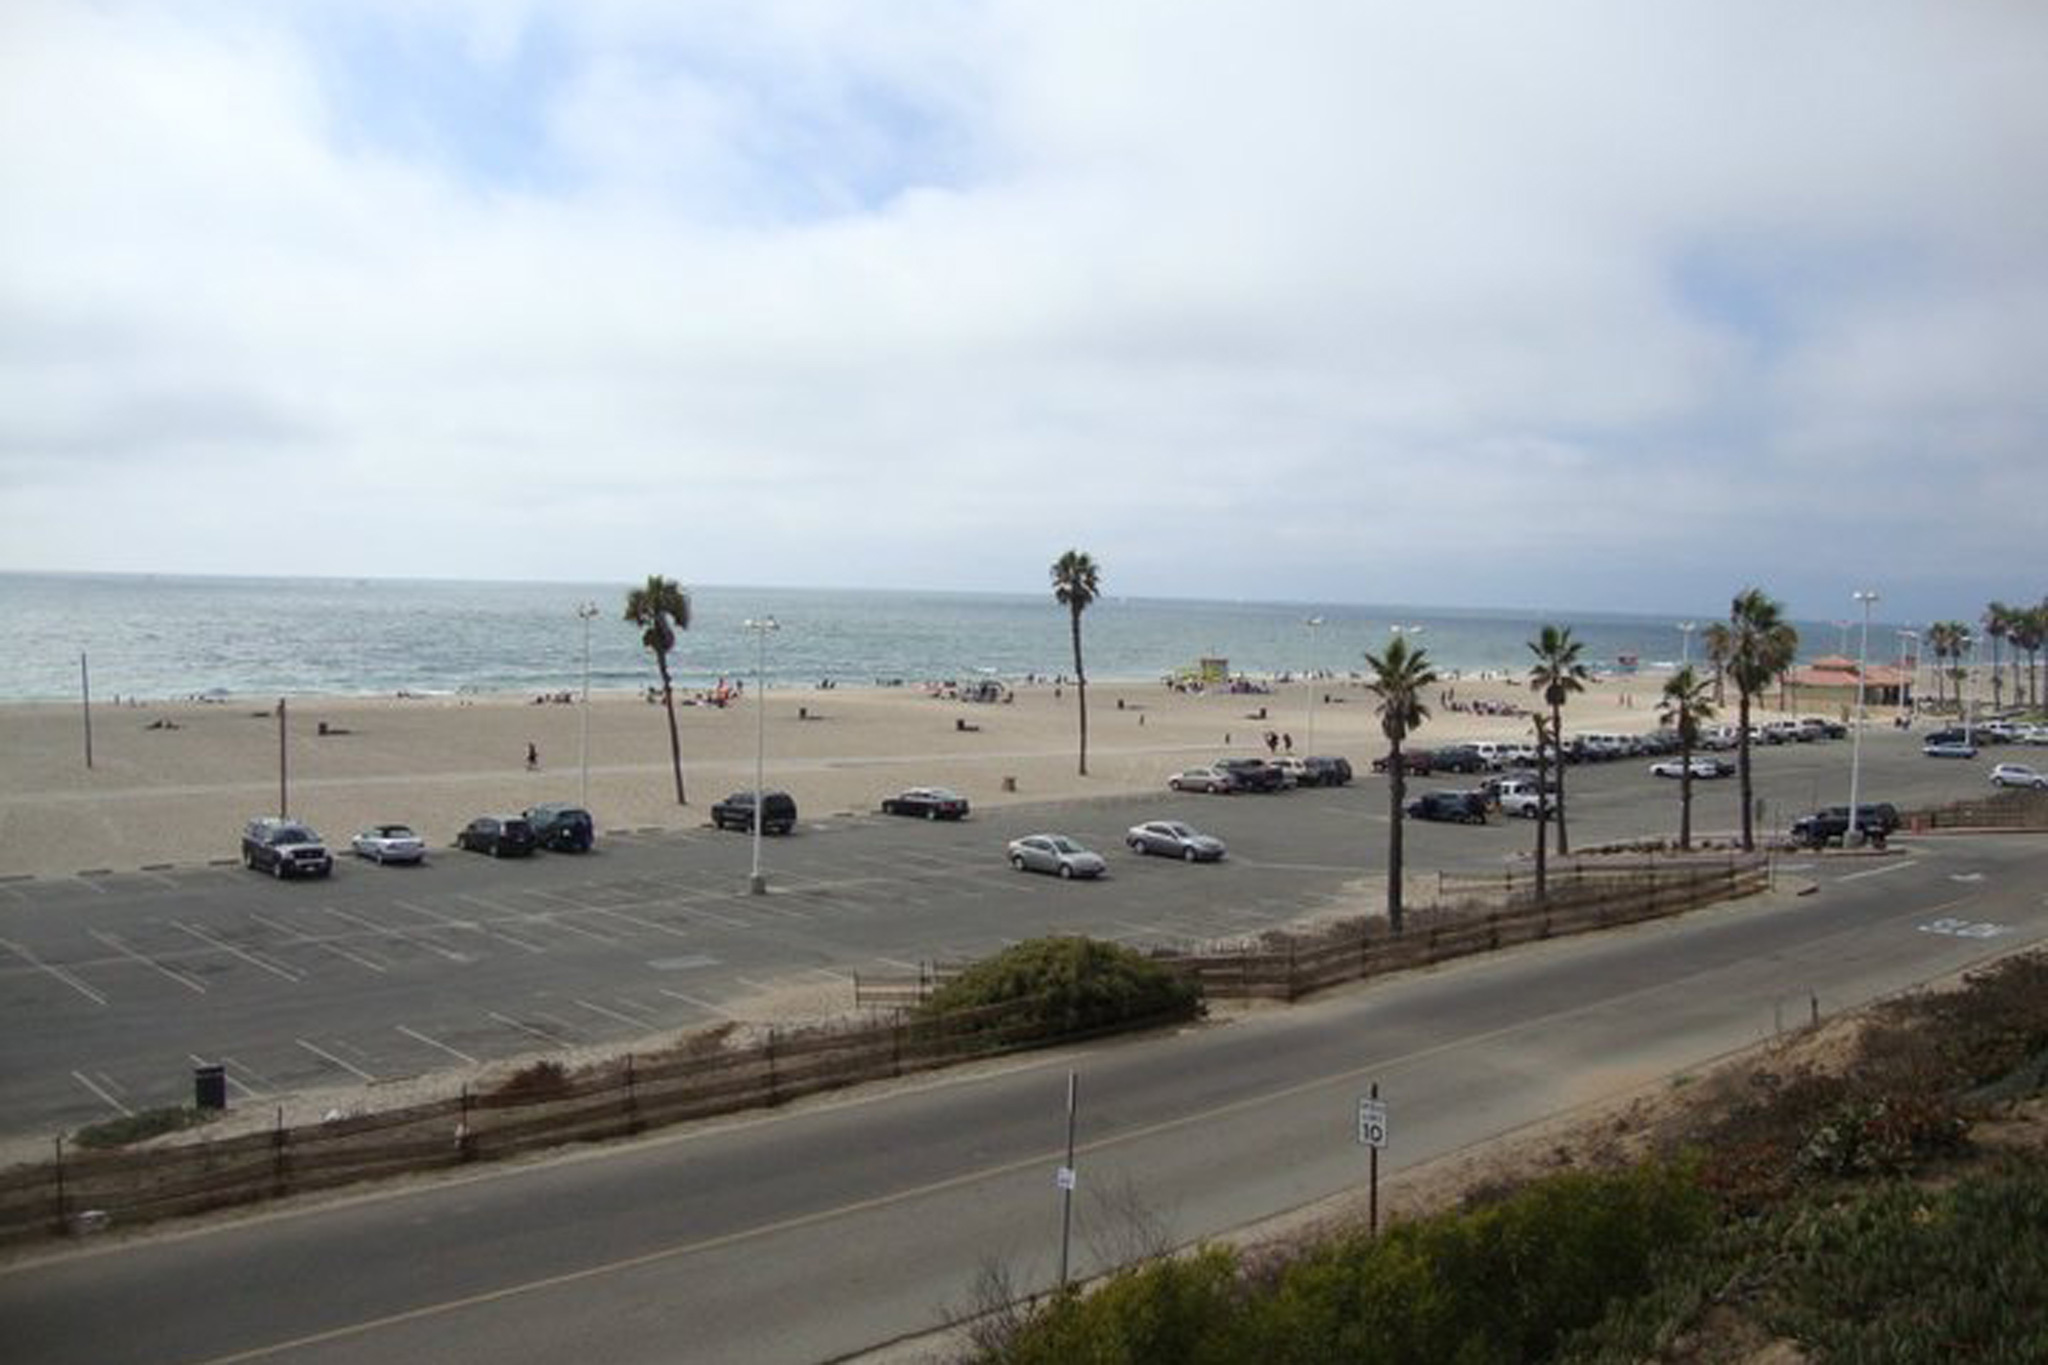 Dockweiler Beach, playa vista, beach